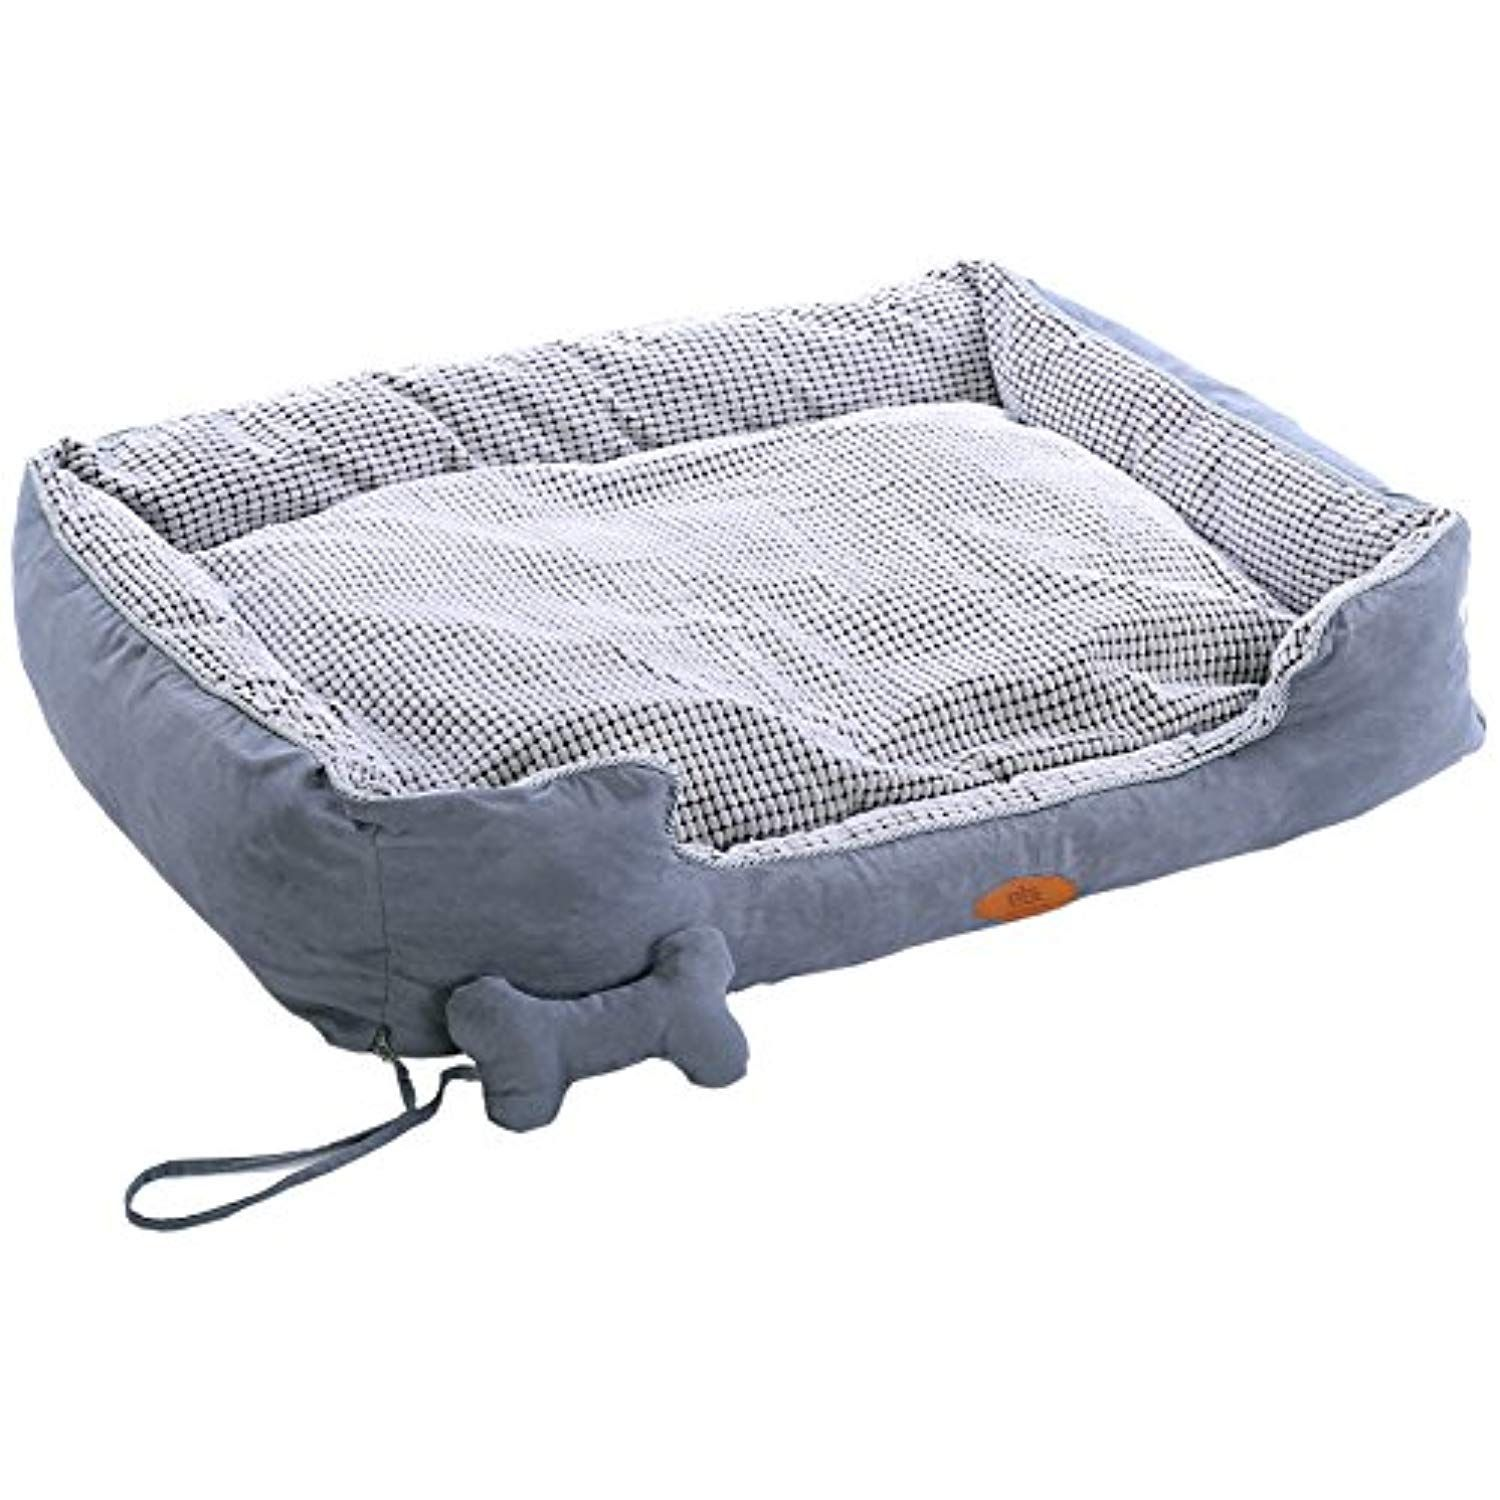 Pls Birdsong Paradise Bolster Extra Large Dog Bed With Pillow Gray Extra Large 35wx47l Dog Beds For Large Dogs Compl Dog Bed Large Bolster Dog Bed Dog Bed